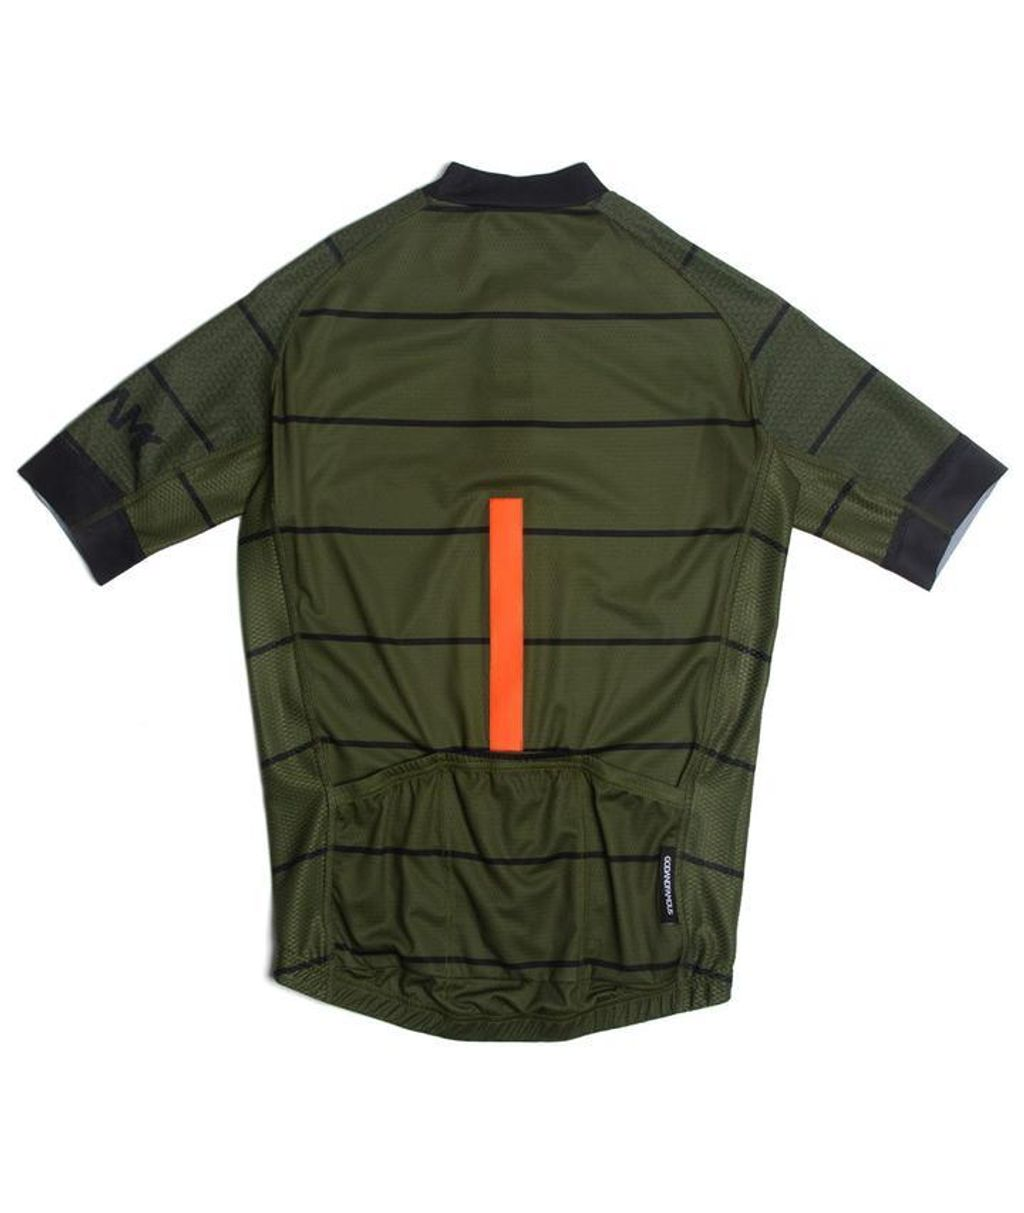 godandfamous_rules_jersey_olive_2_720x.jpg